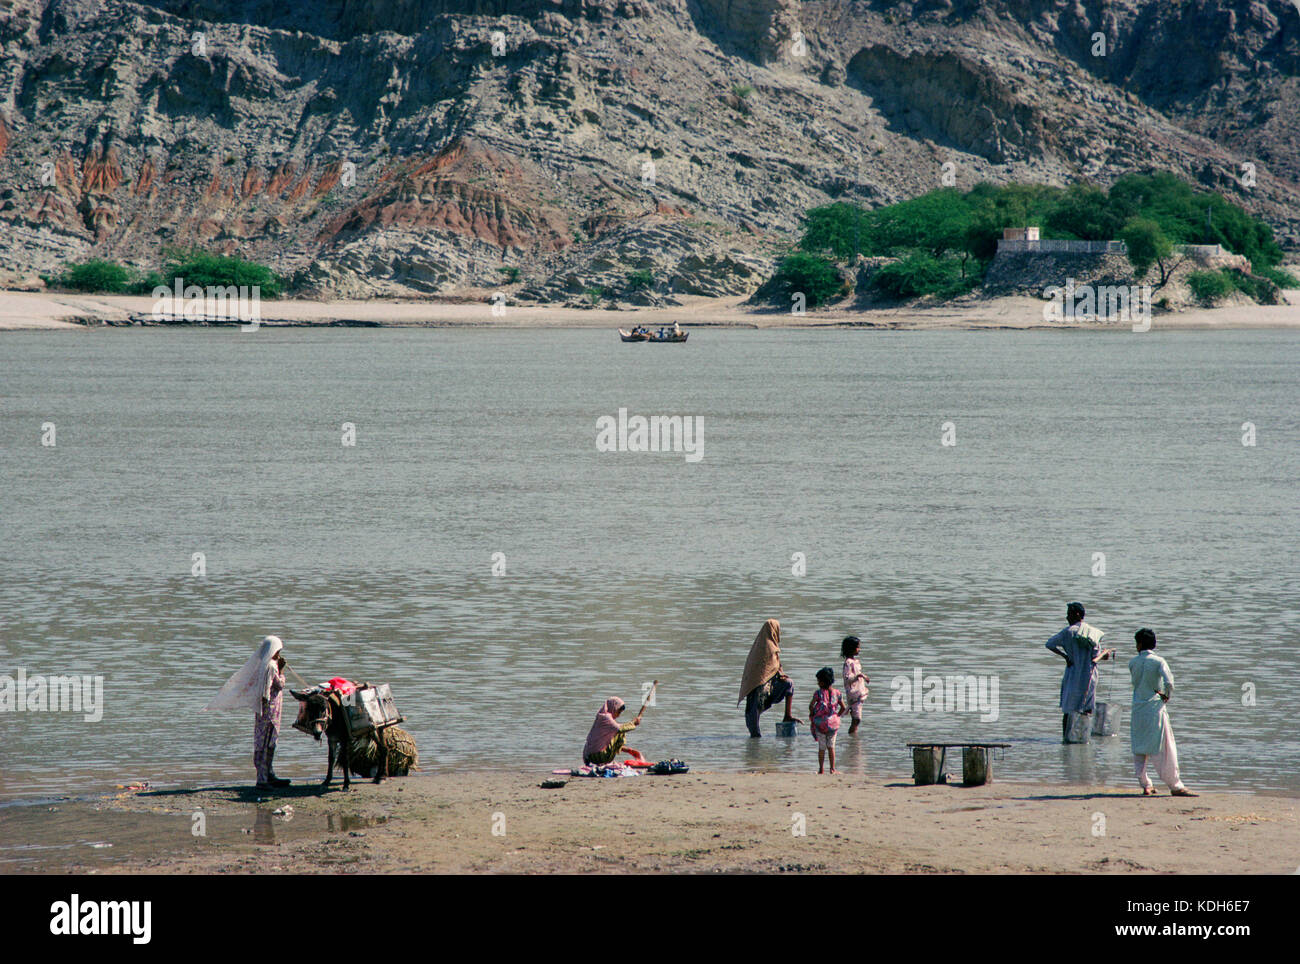 People wash clothes and fetch water on the River Indus at Hund, Khyber Pakhtunkhwa, province, Pakistan. - Stock Image